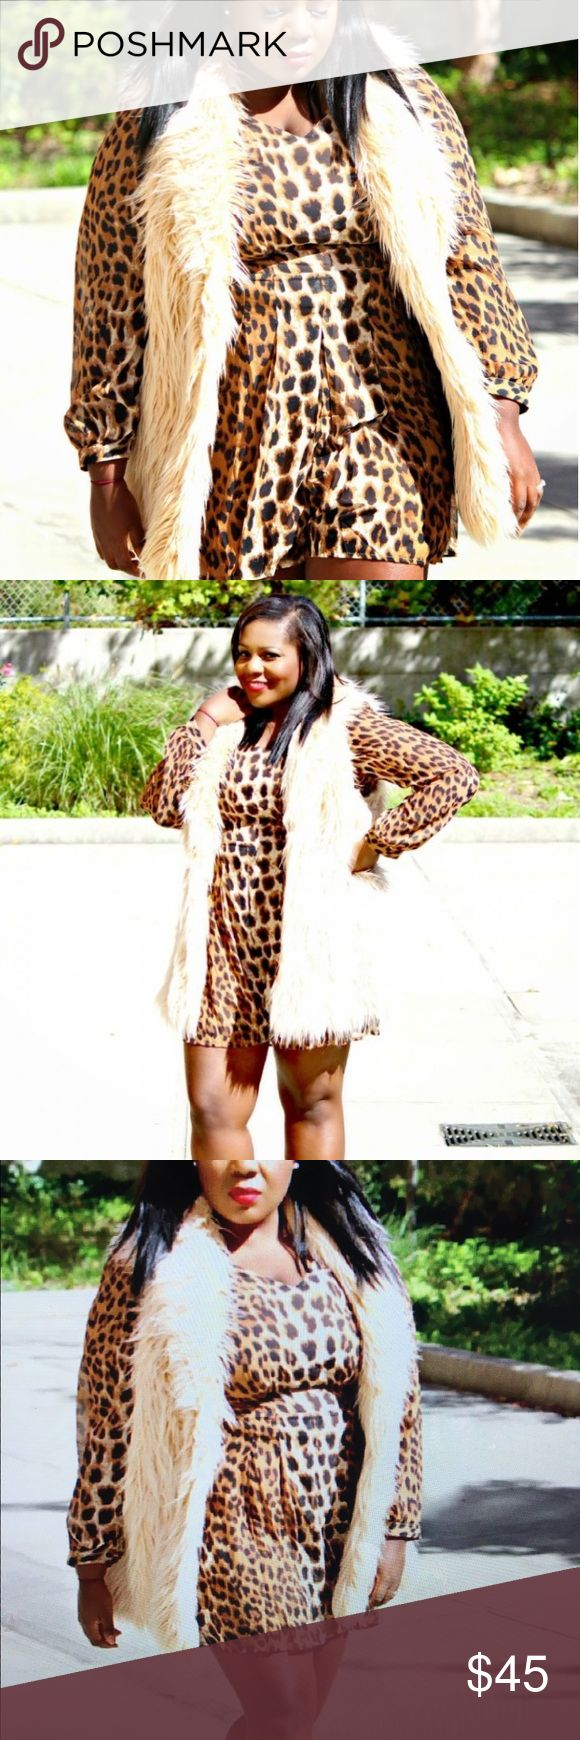 INC FAUX SHAGGY FUR VEST I counted and I own 6 fur vest!! Slowly liquidating my closet. I'm a blogger and often times, only worn these items 1-2x. Size XL from the brand International Concepts or INC purchased from Macy's INC International Concepts Jackets & Coats Vests